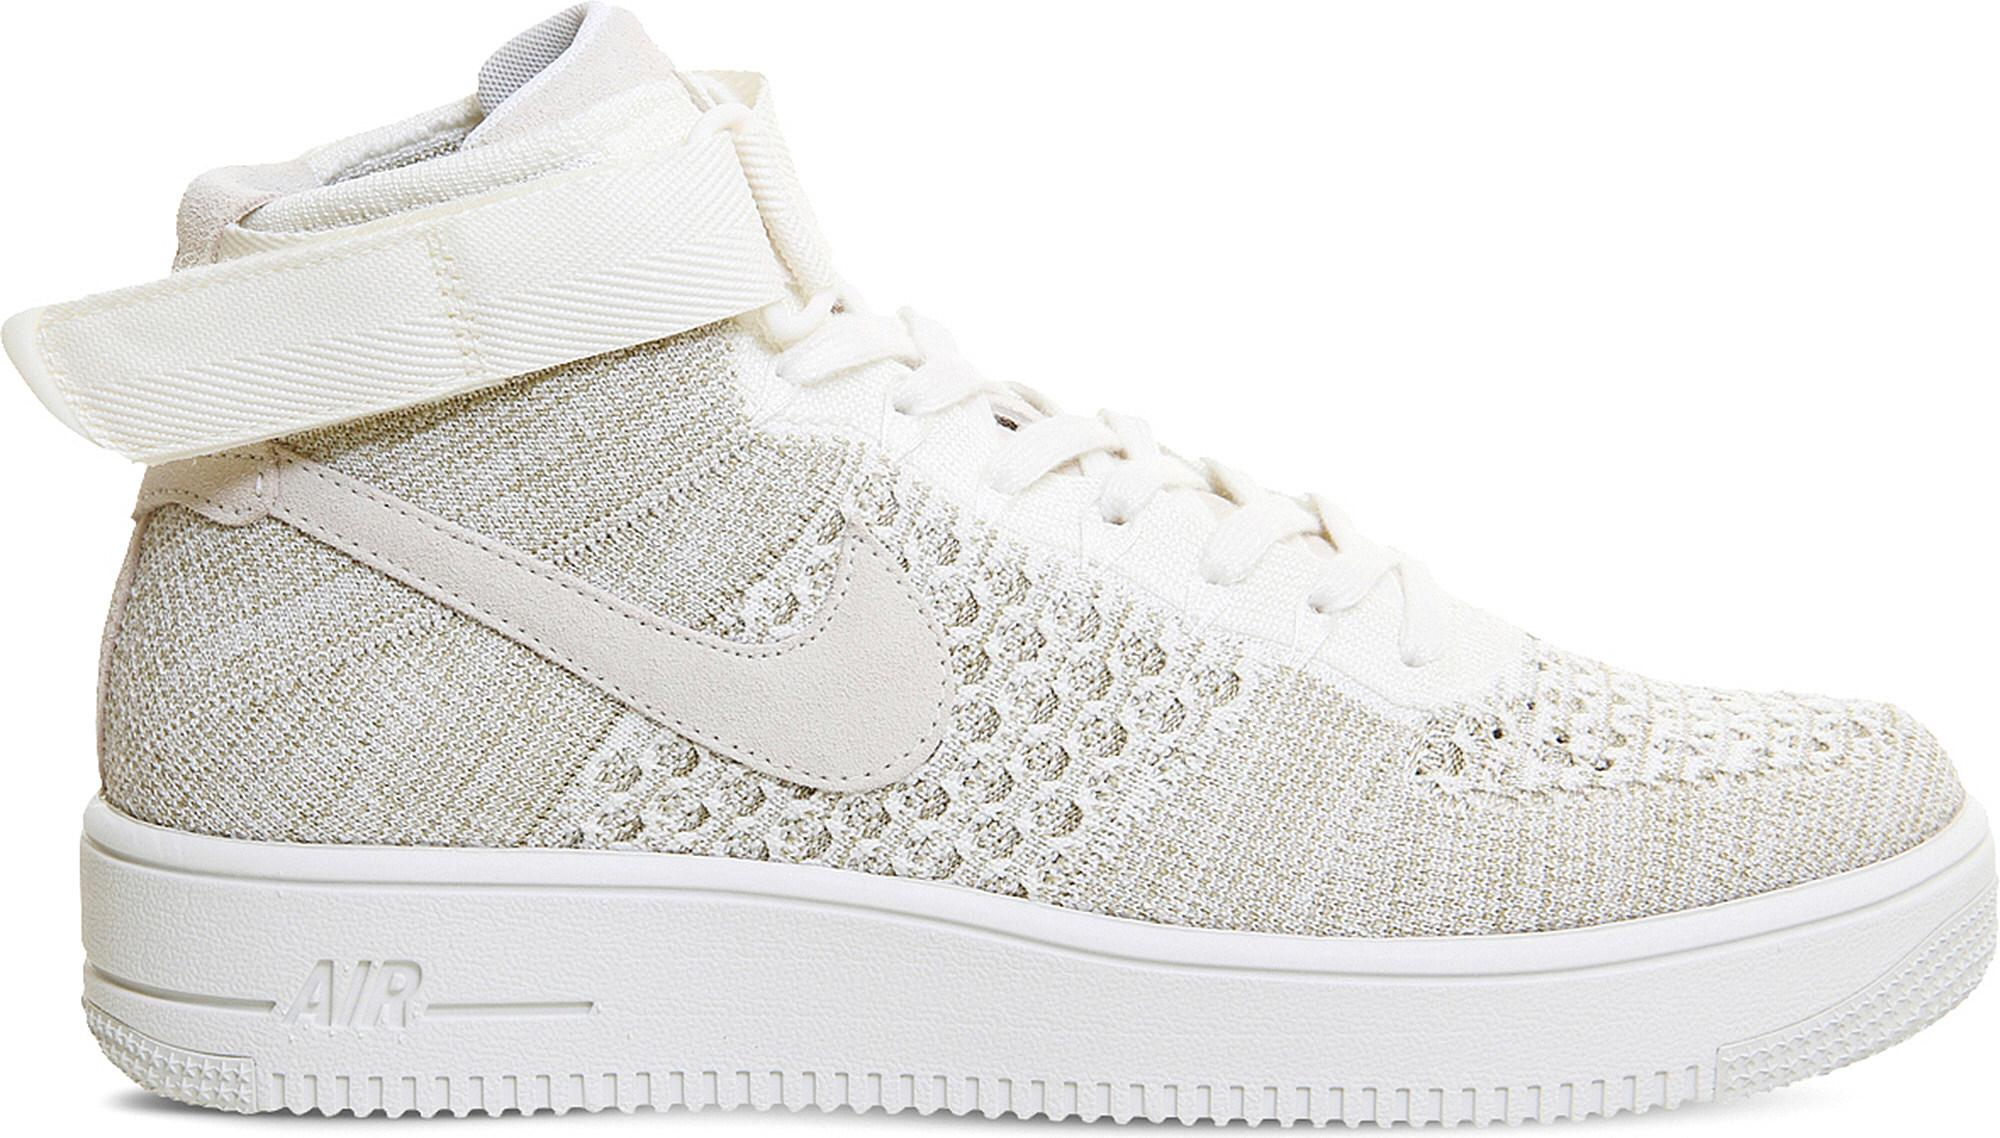 11ee518a7fbd Lyst - Nike Air Force 1 Flyknit Mid-top Trainers in White